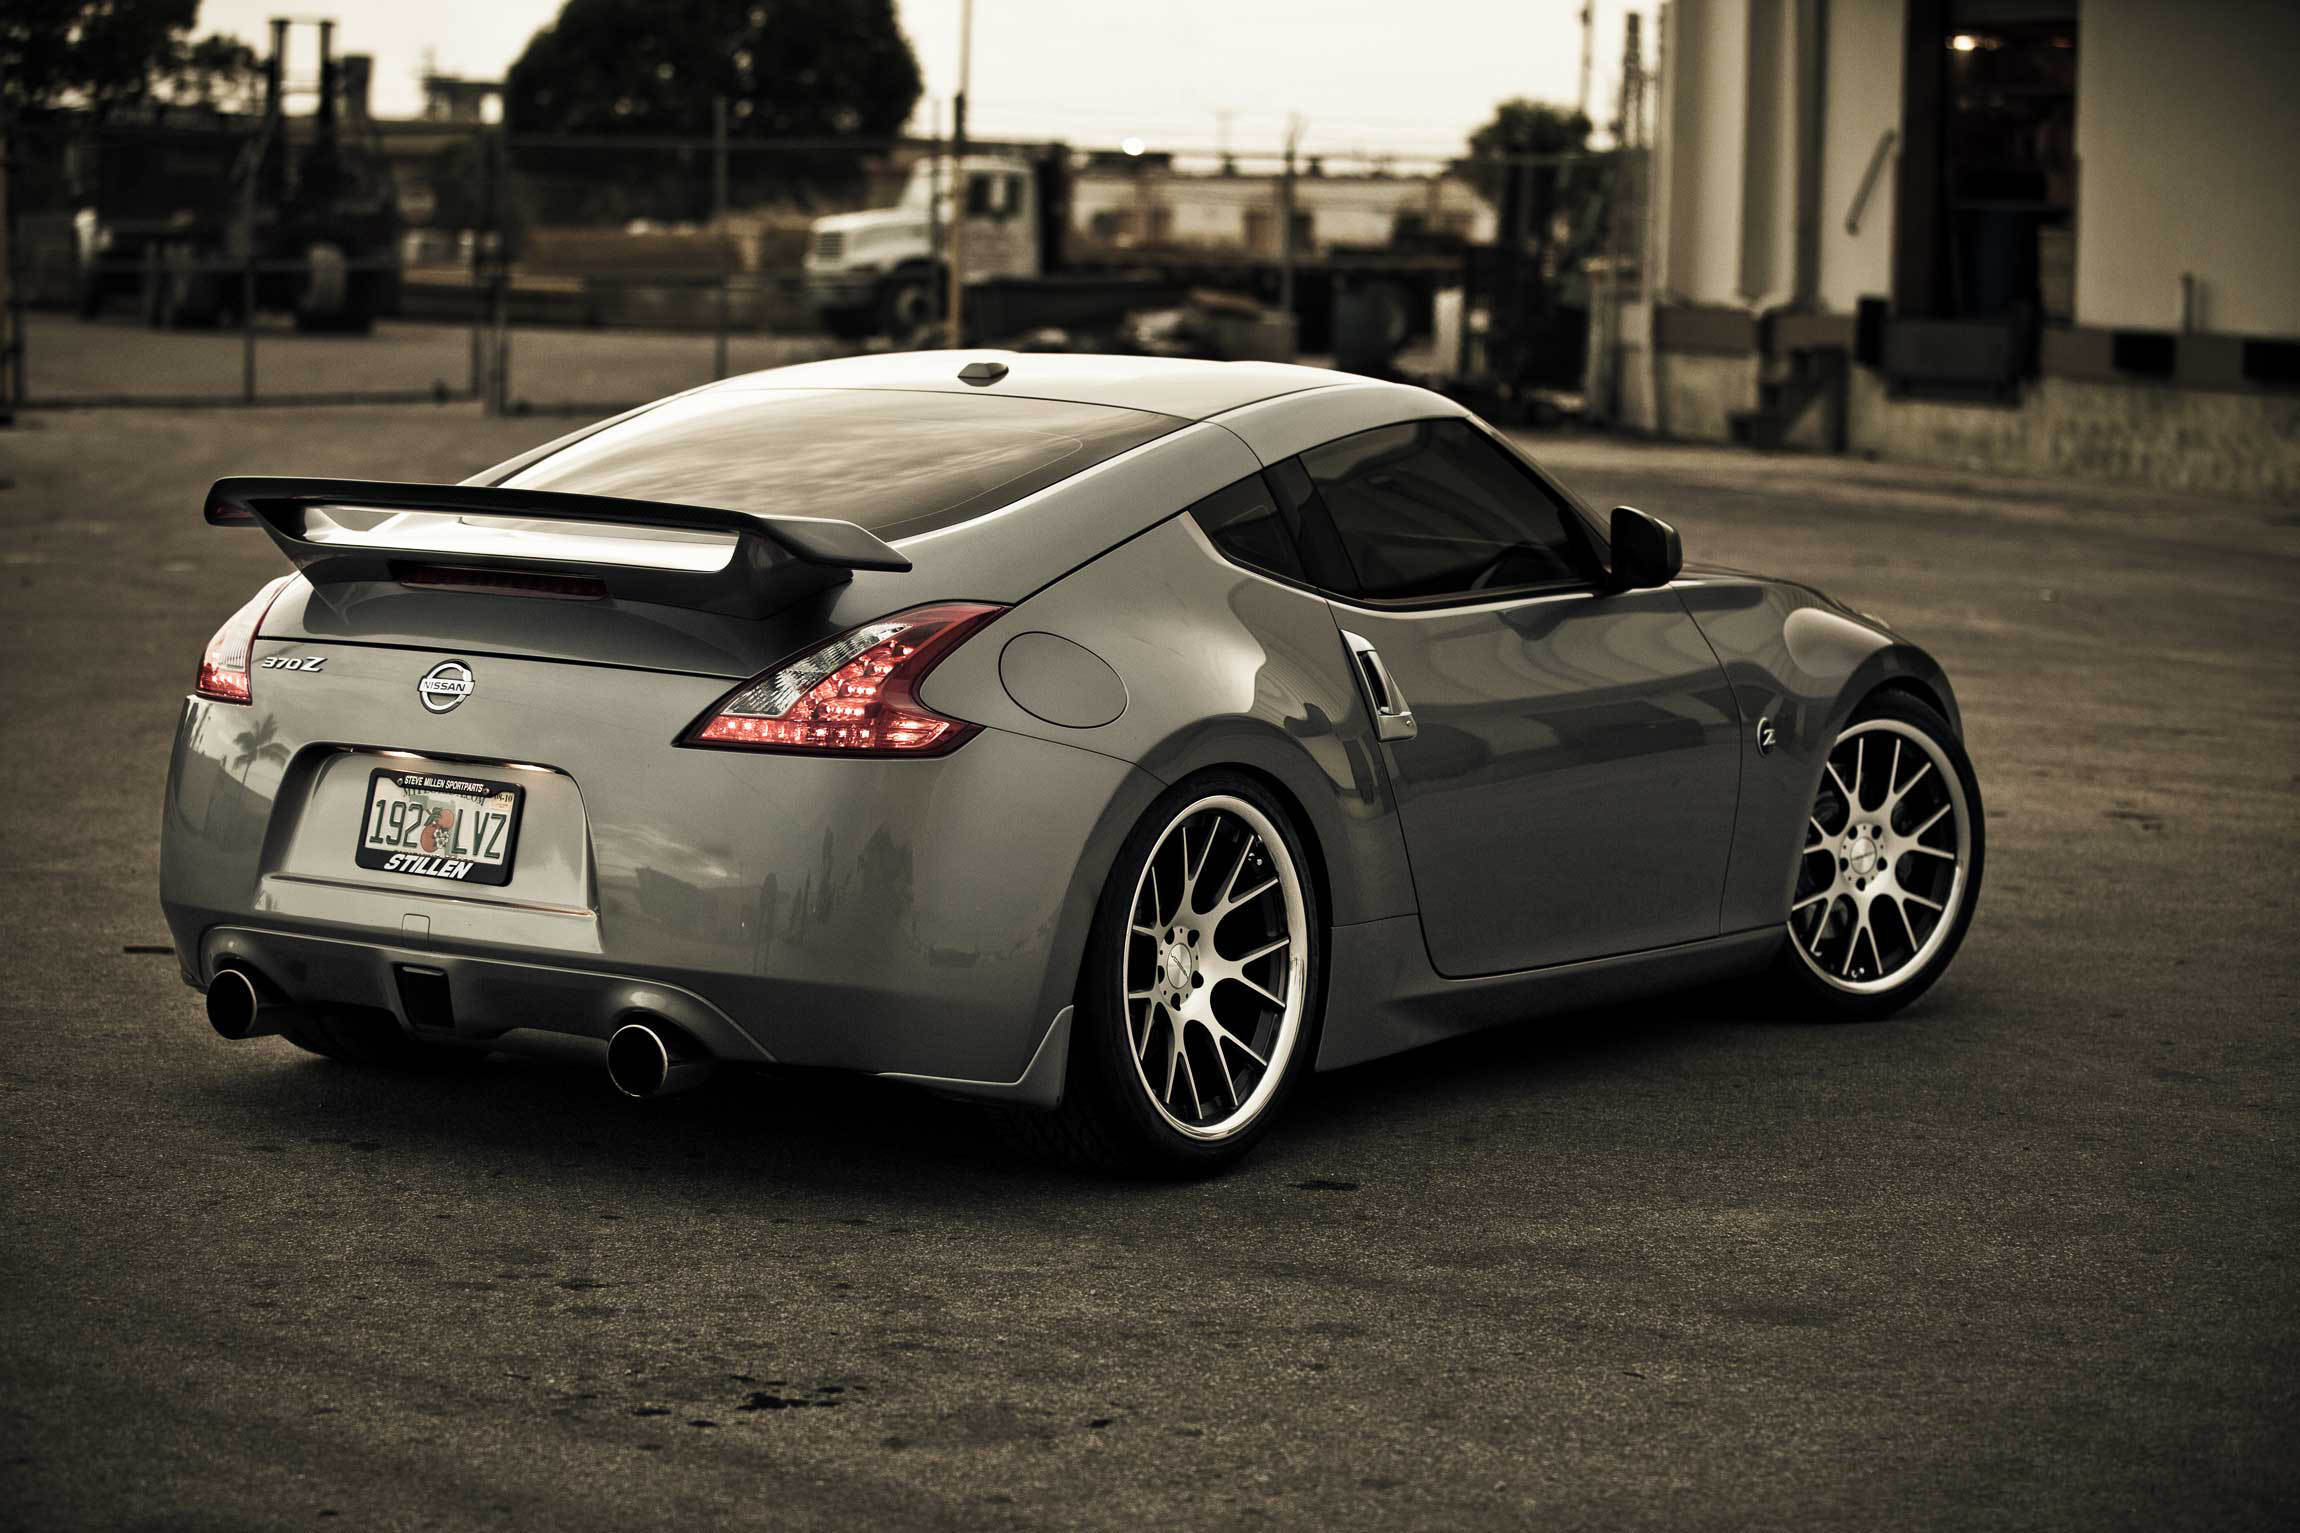 64 Nissan 370Z HD Wallpapers | Backgrounds - Wallpaper Abyss